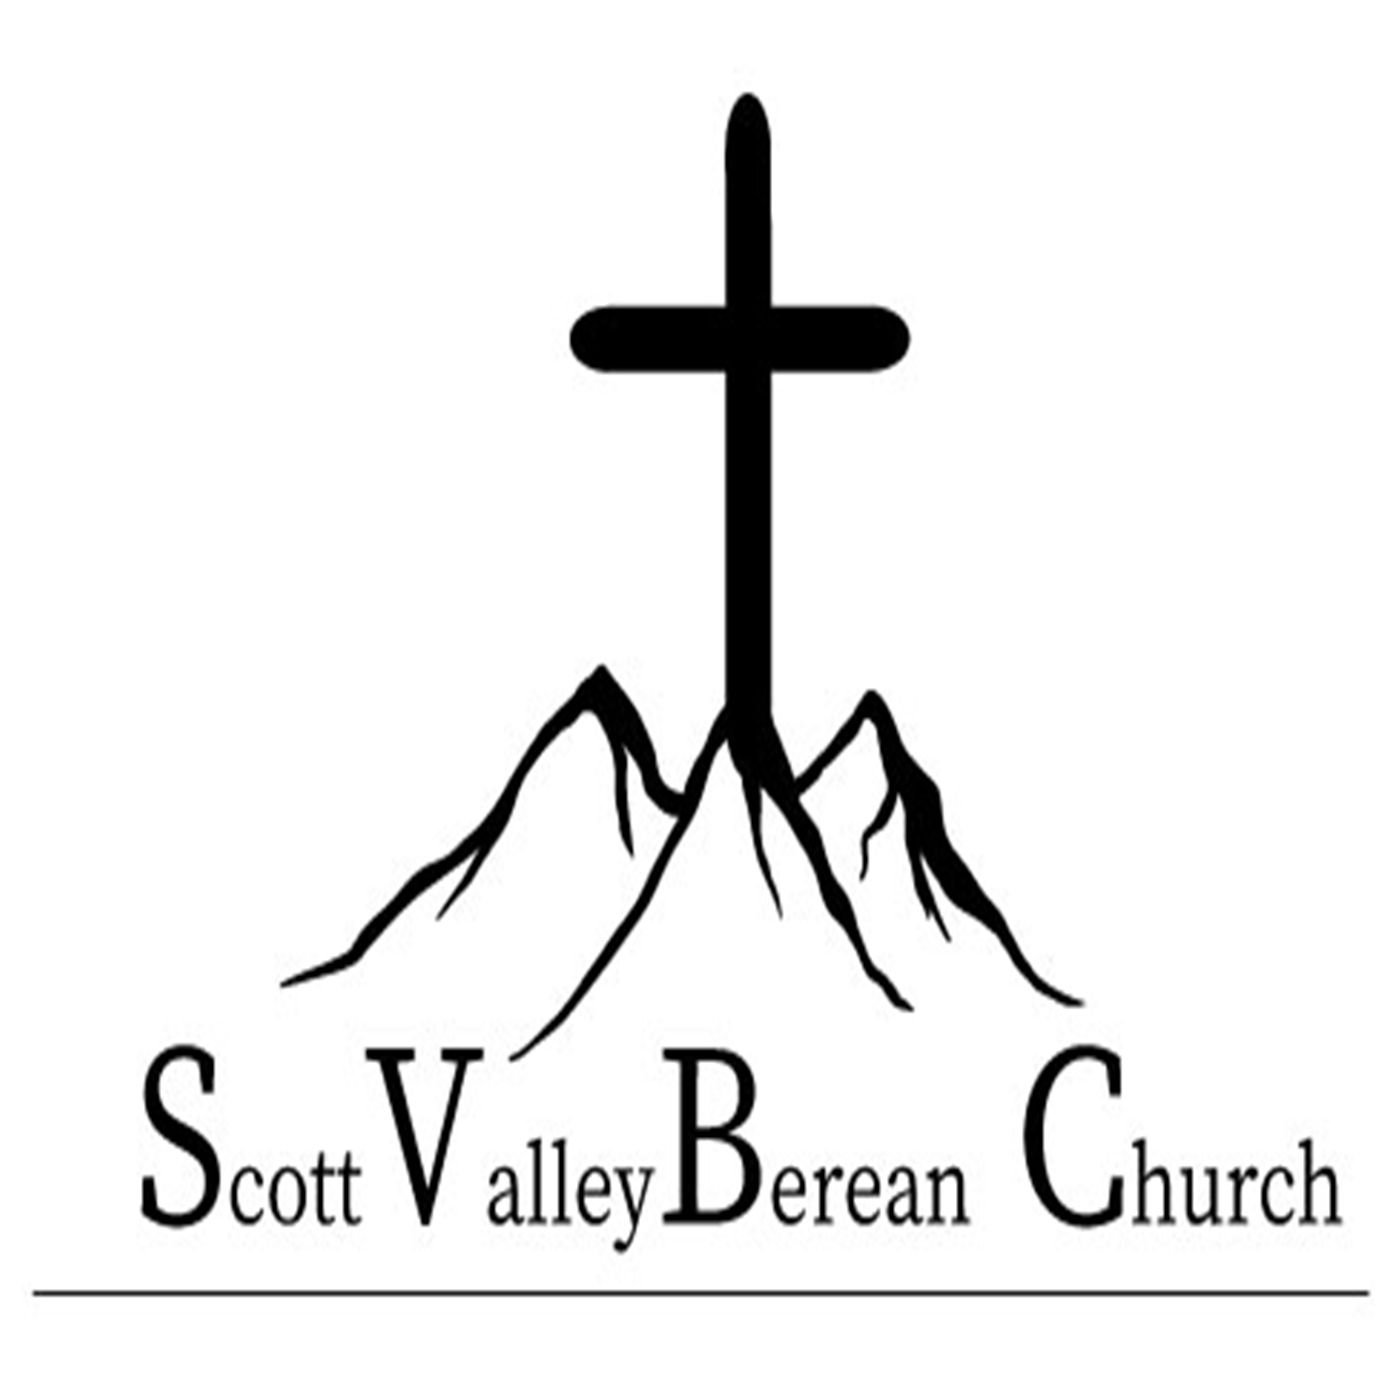 Scott Valley Berean Church